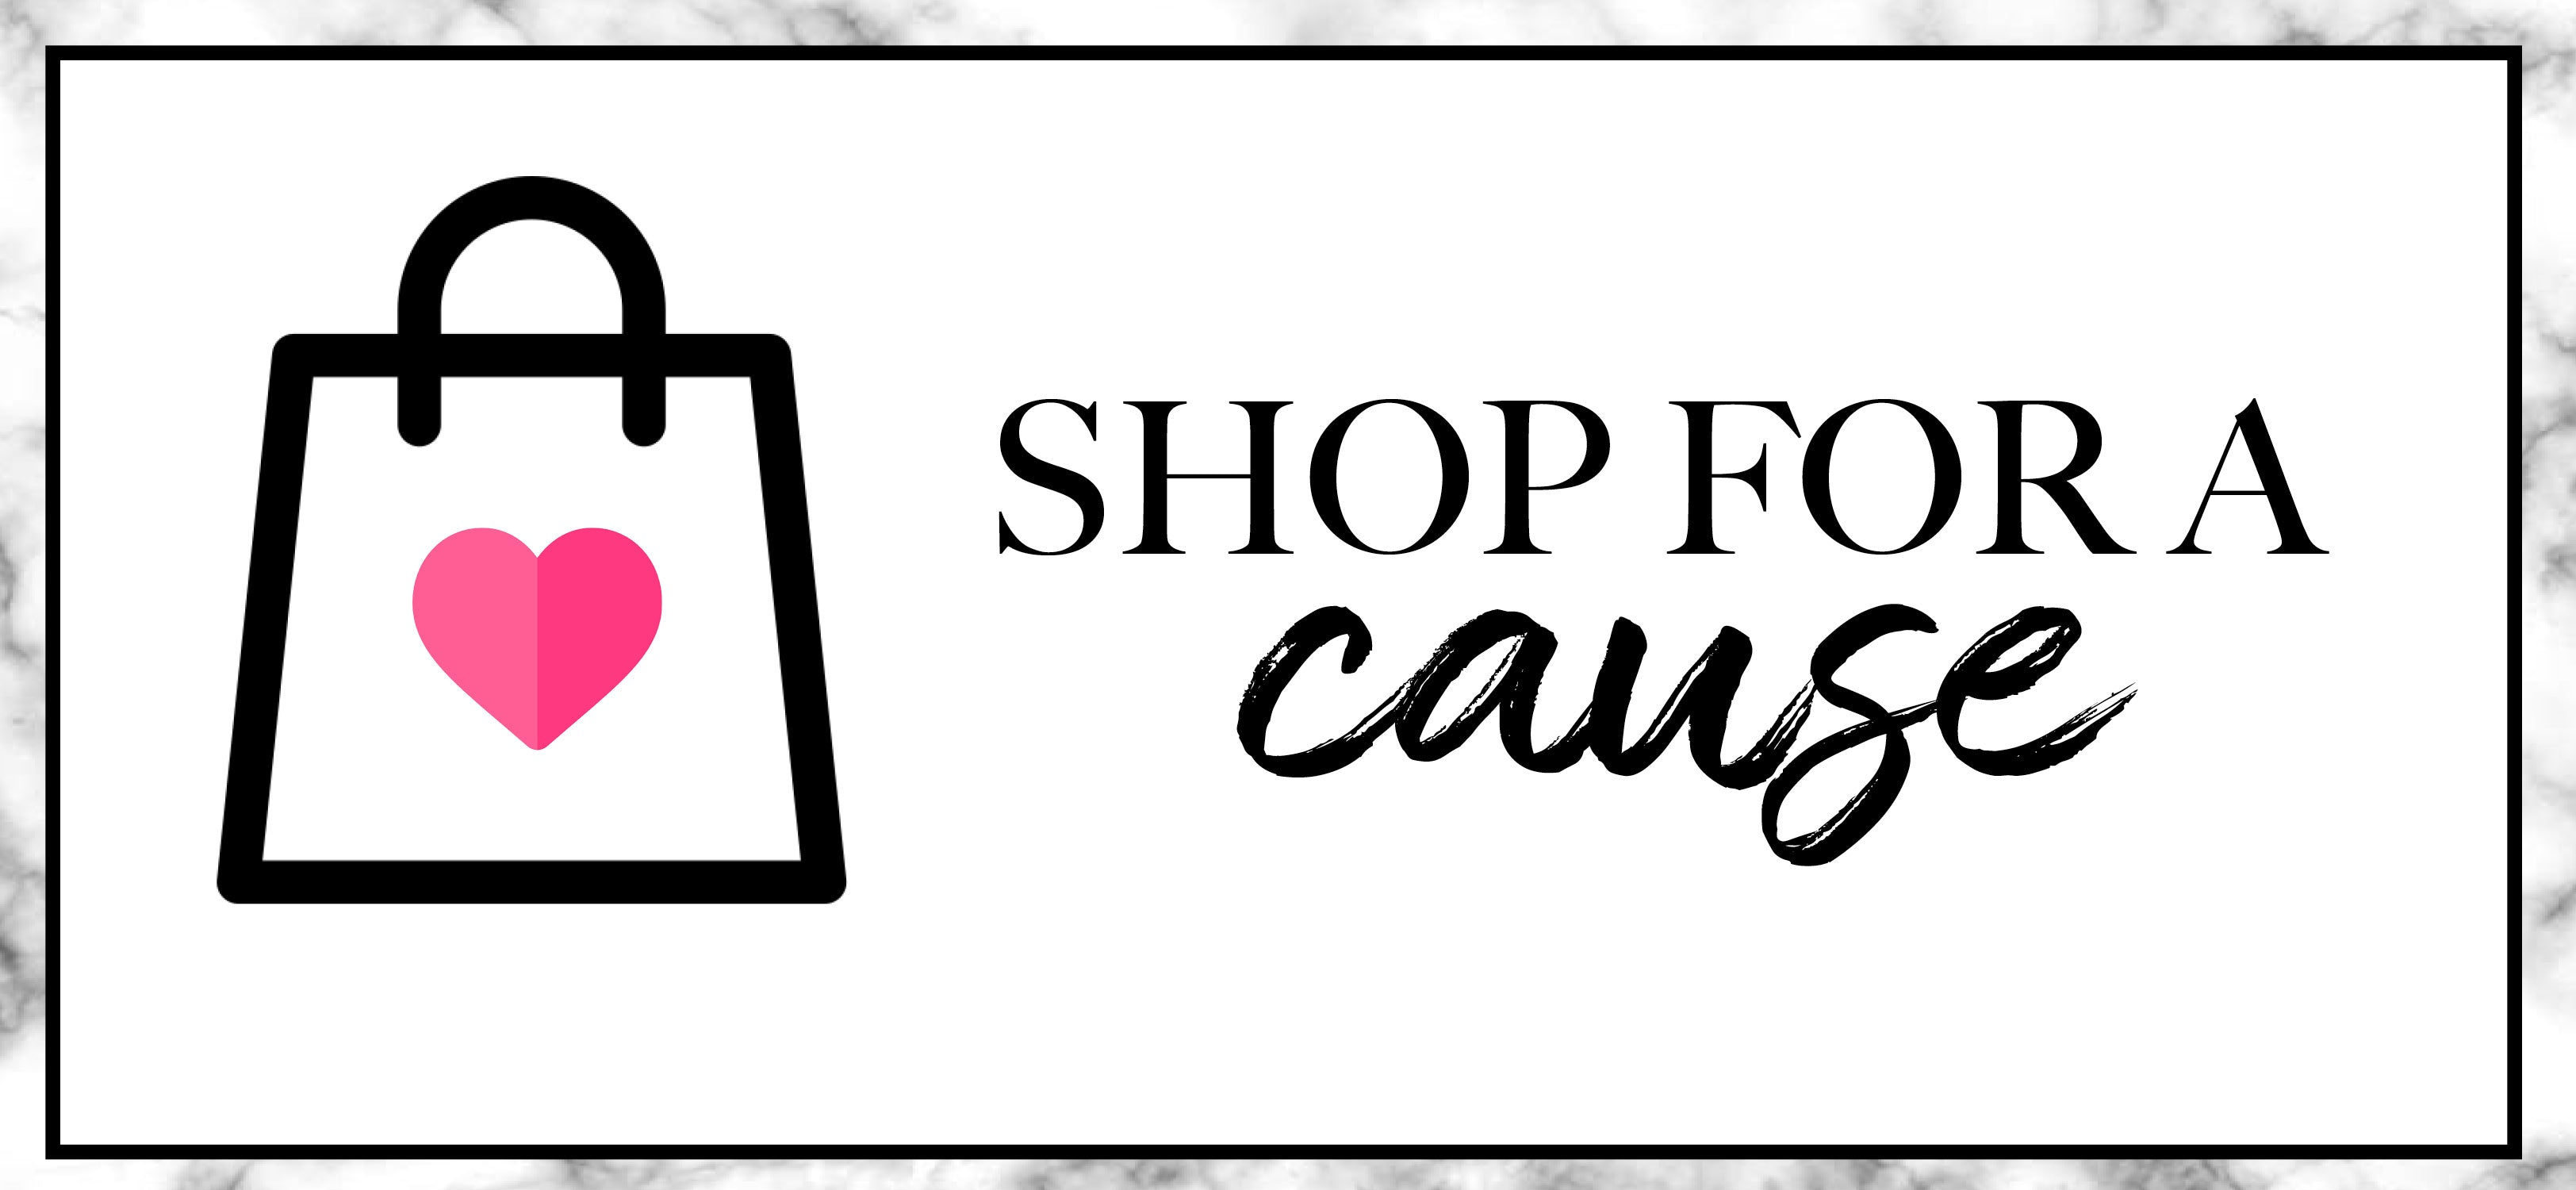 Shop for a cause.